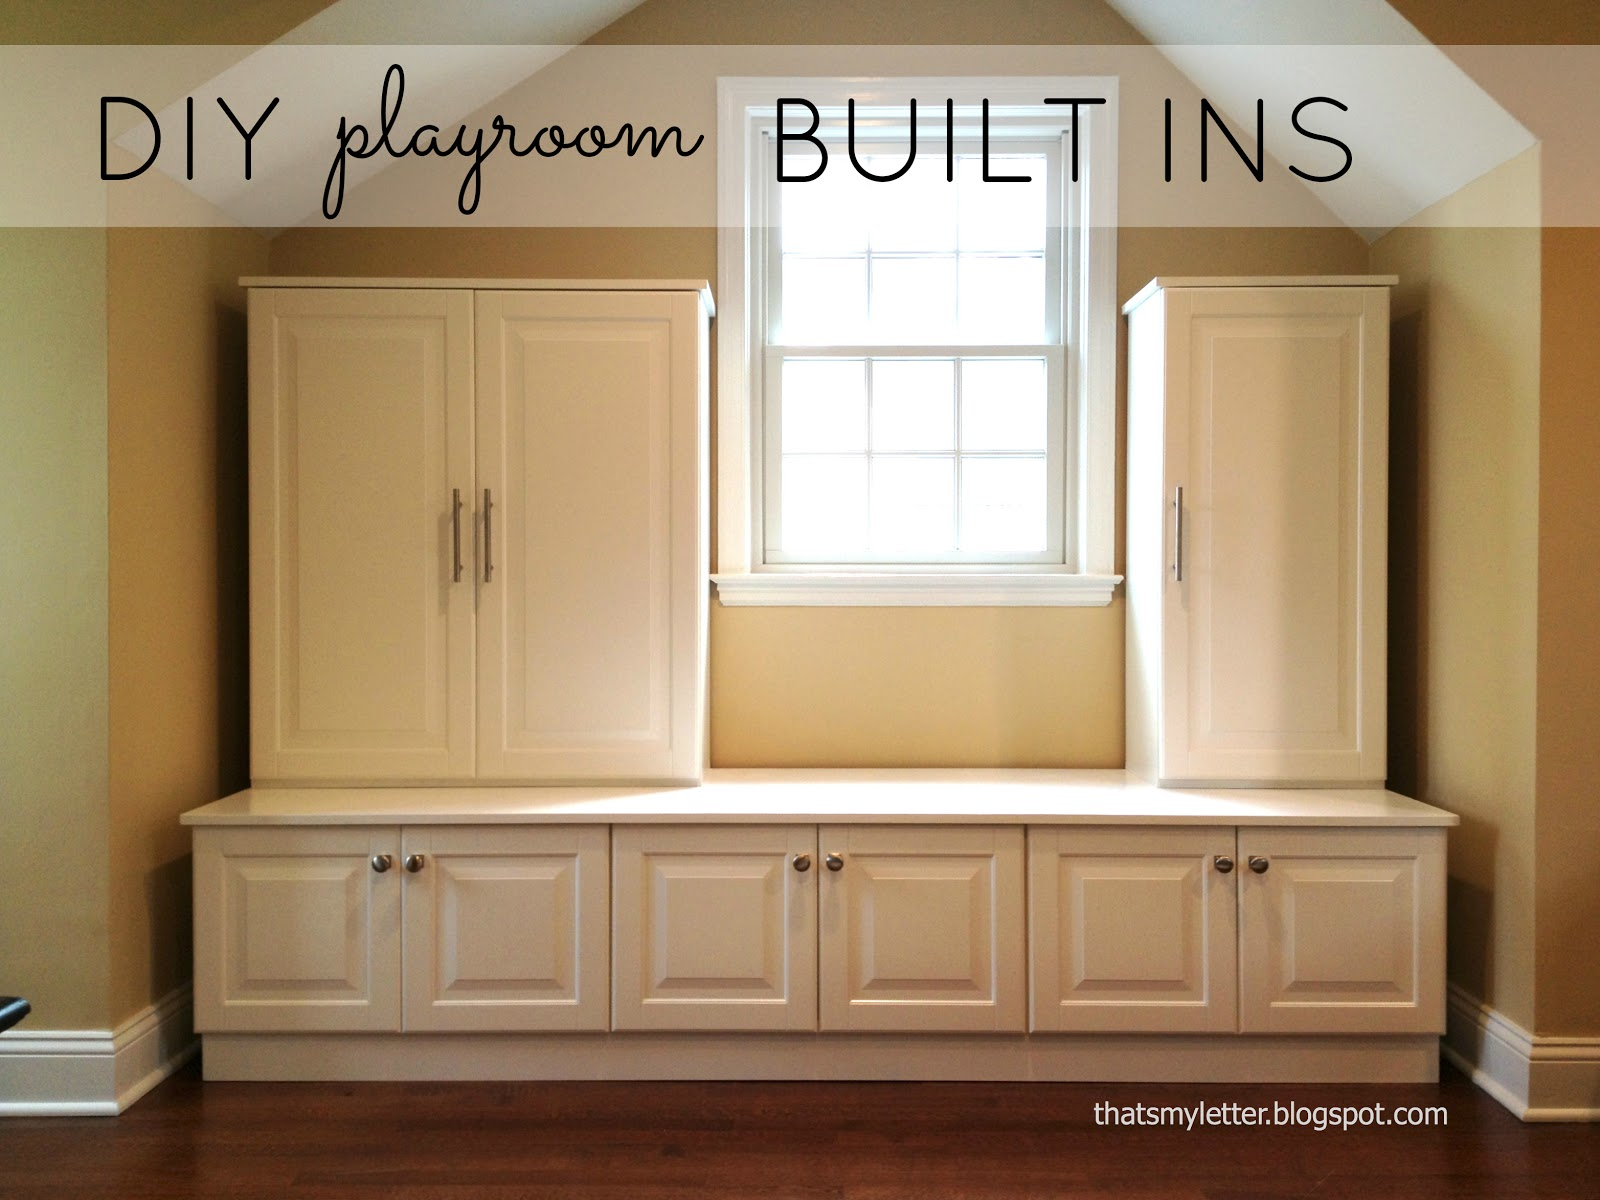 That's My Letter: DIY Playroom Built Ins from Ikea Cabinets